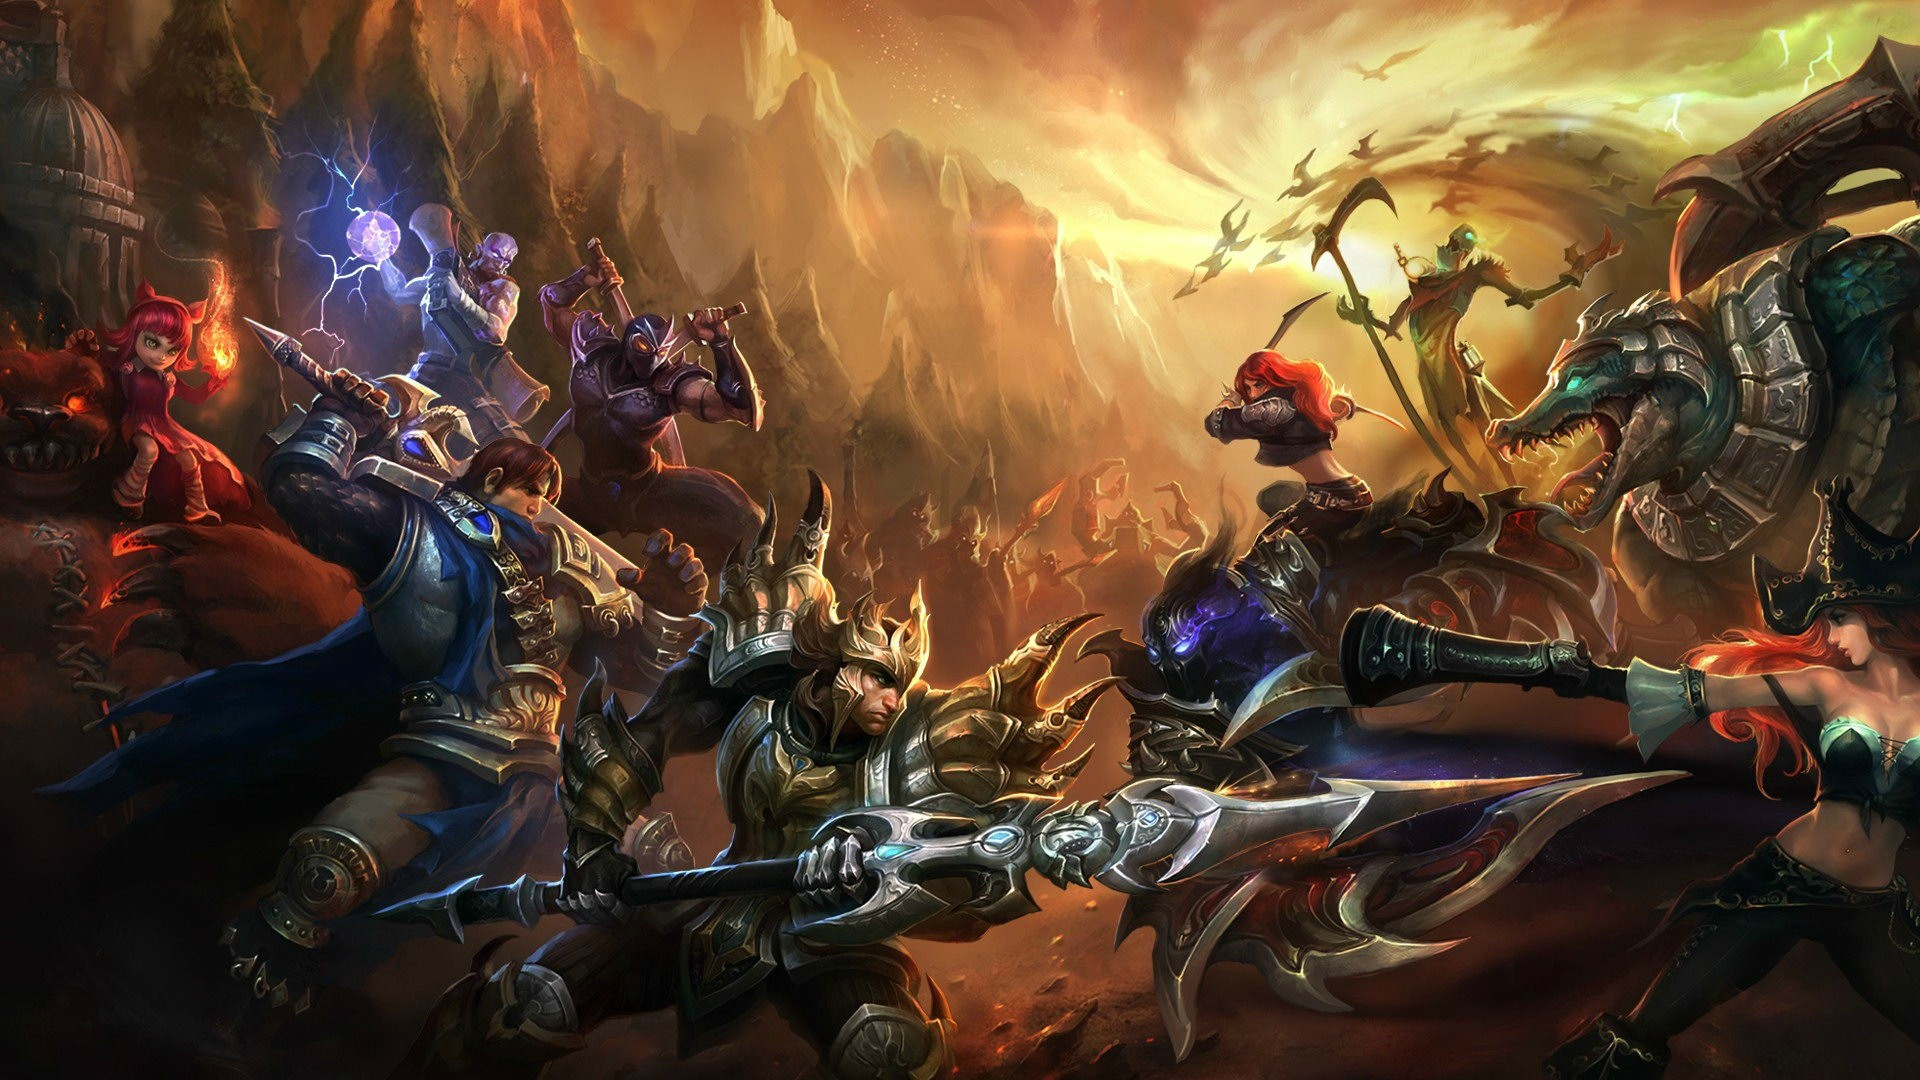 Jarvan IV, Garen, Shen, Ryze and Annie Vs Nocturne, Renekton, Katarina, Fiddlesticks and Miss Fortune